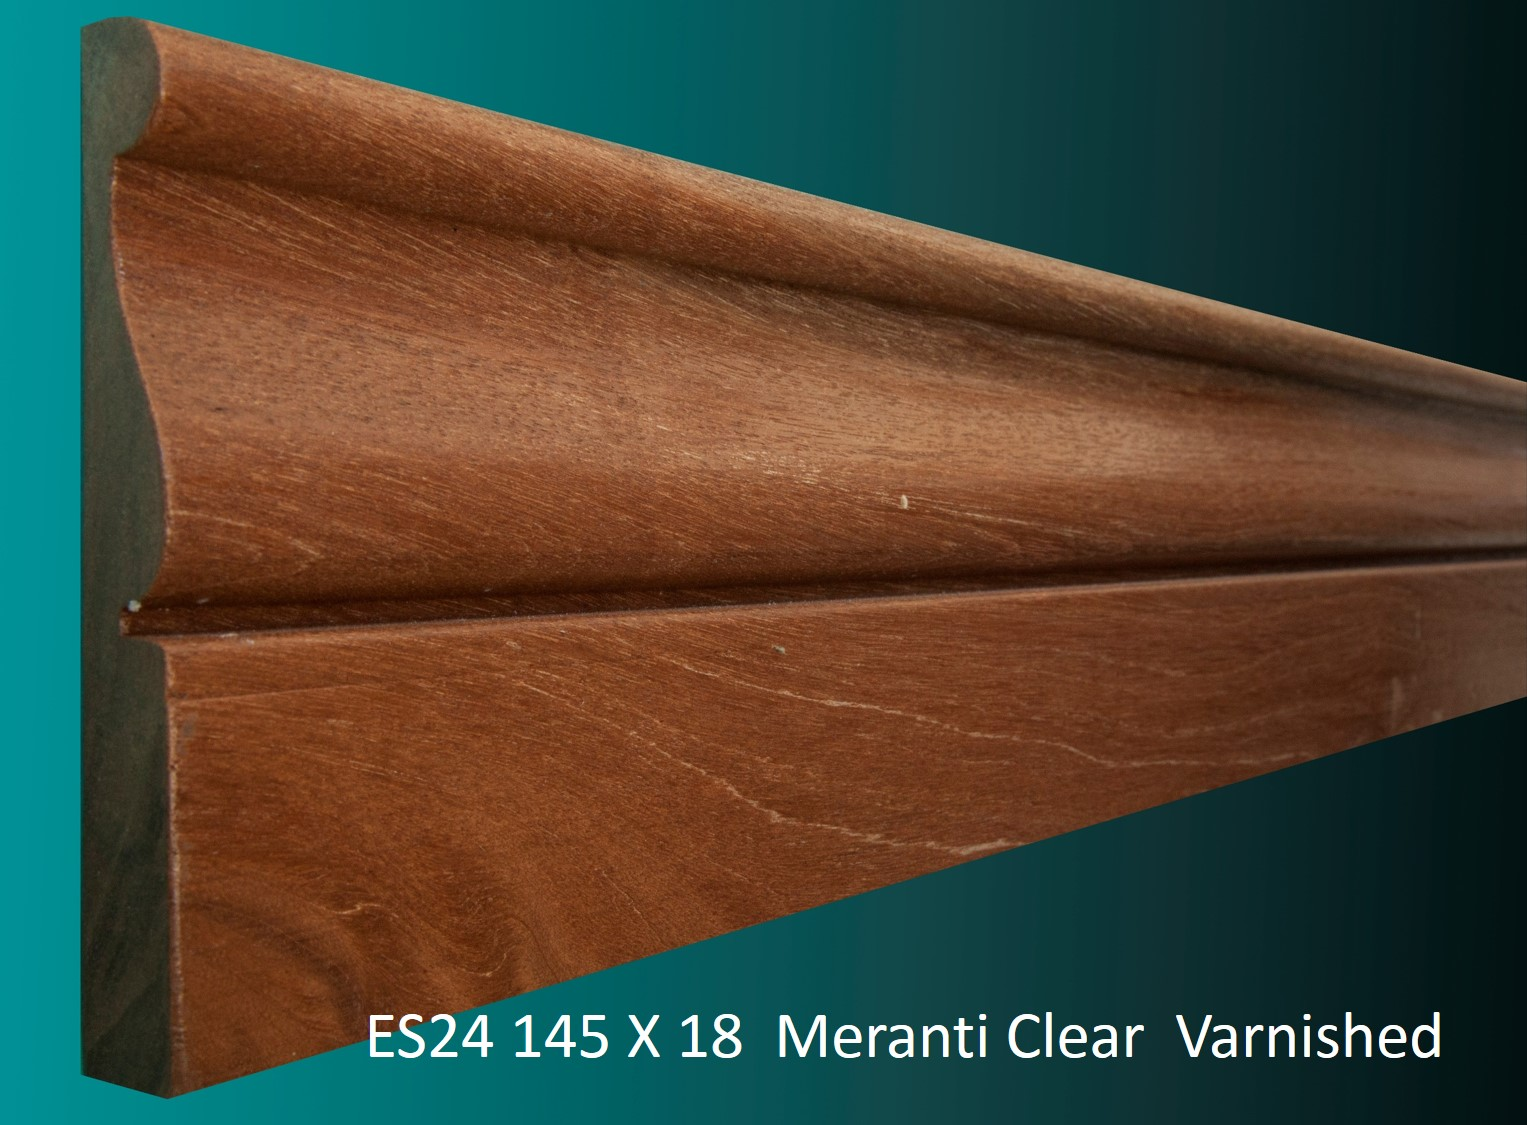 ES24 145 X 18 Meranti Clear Varnished